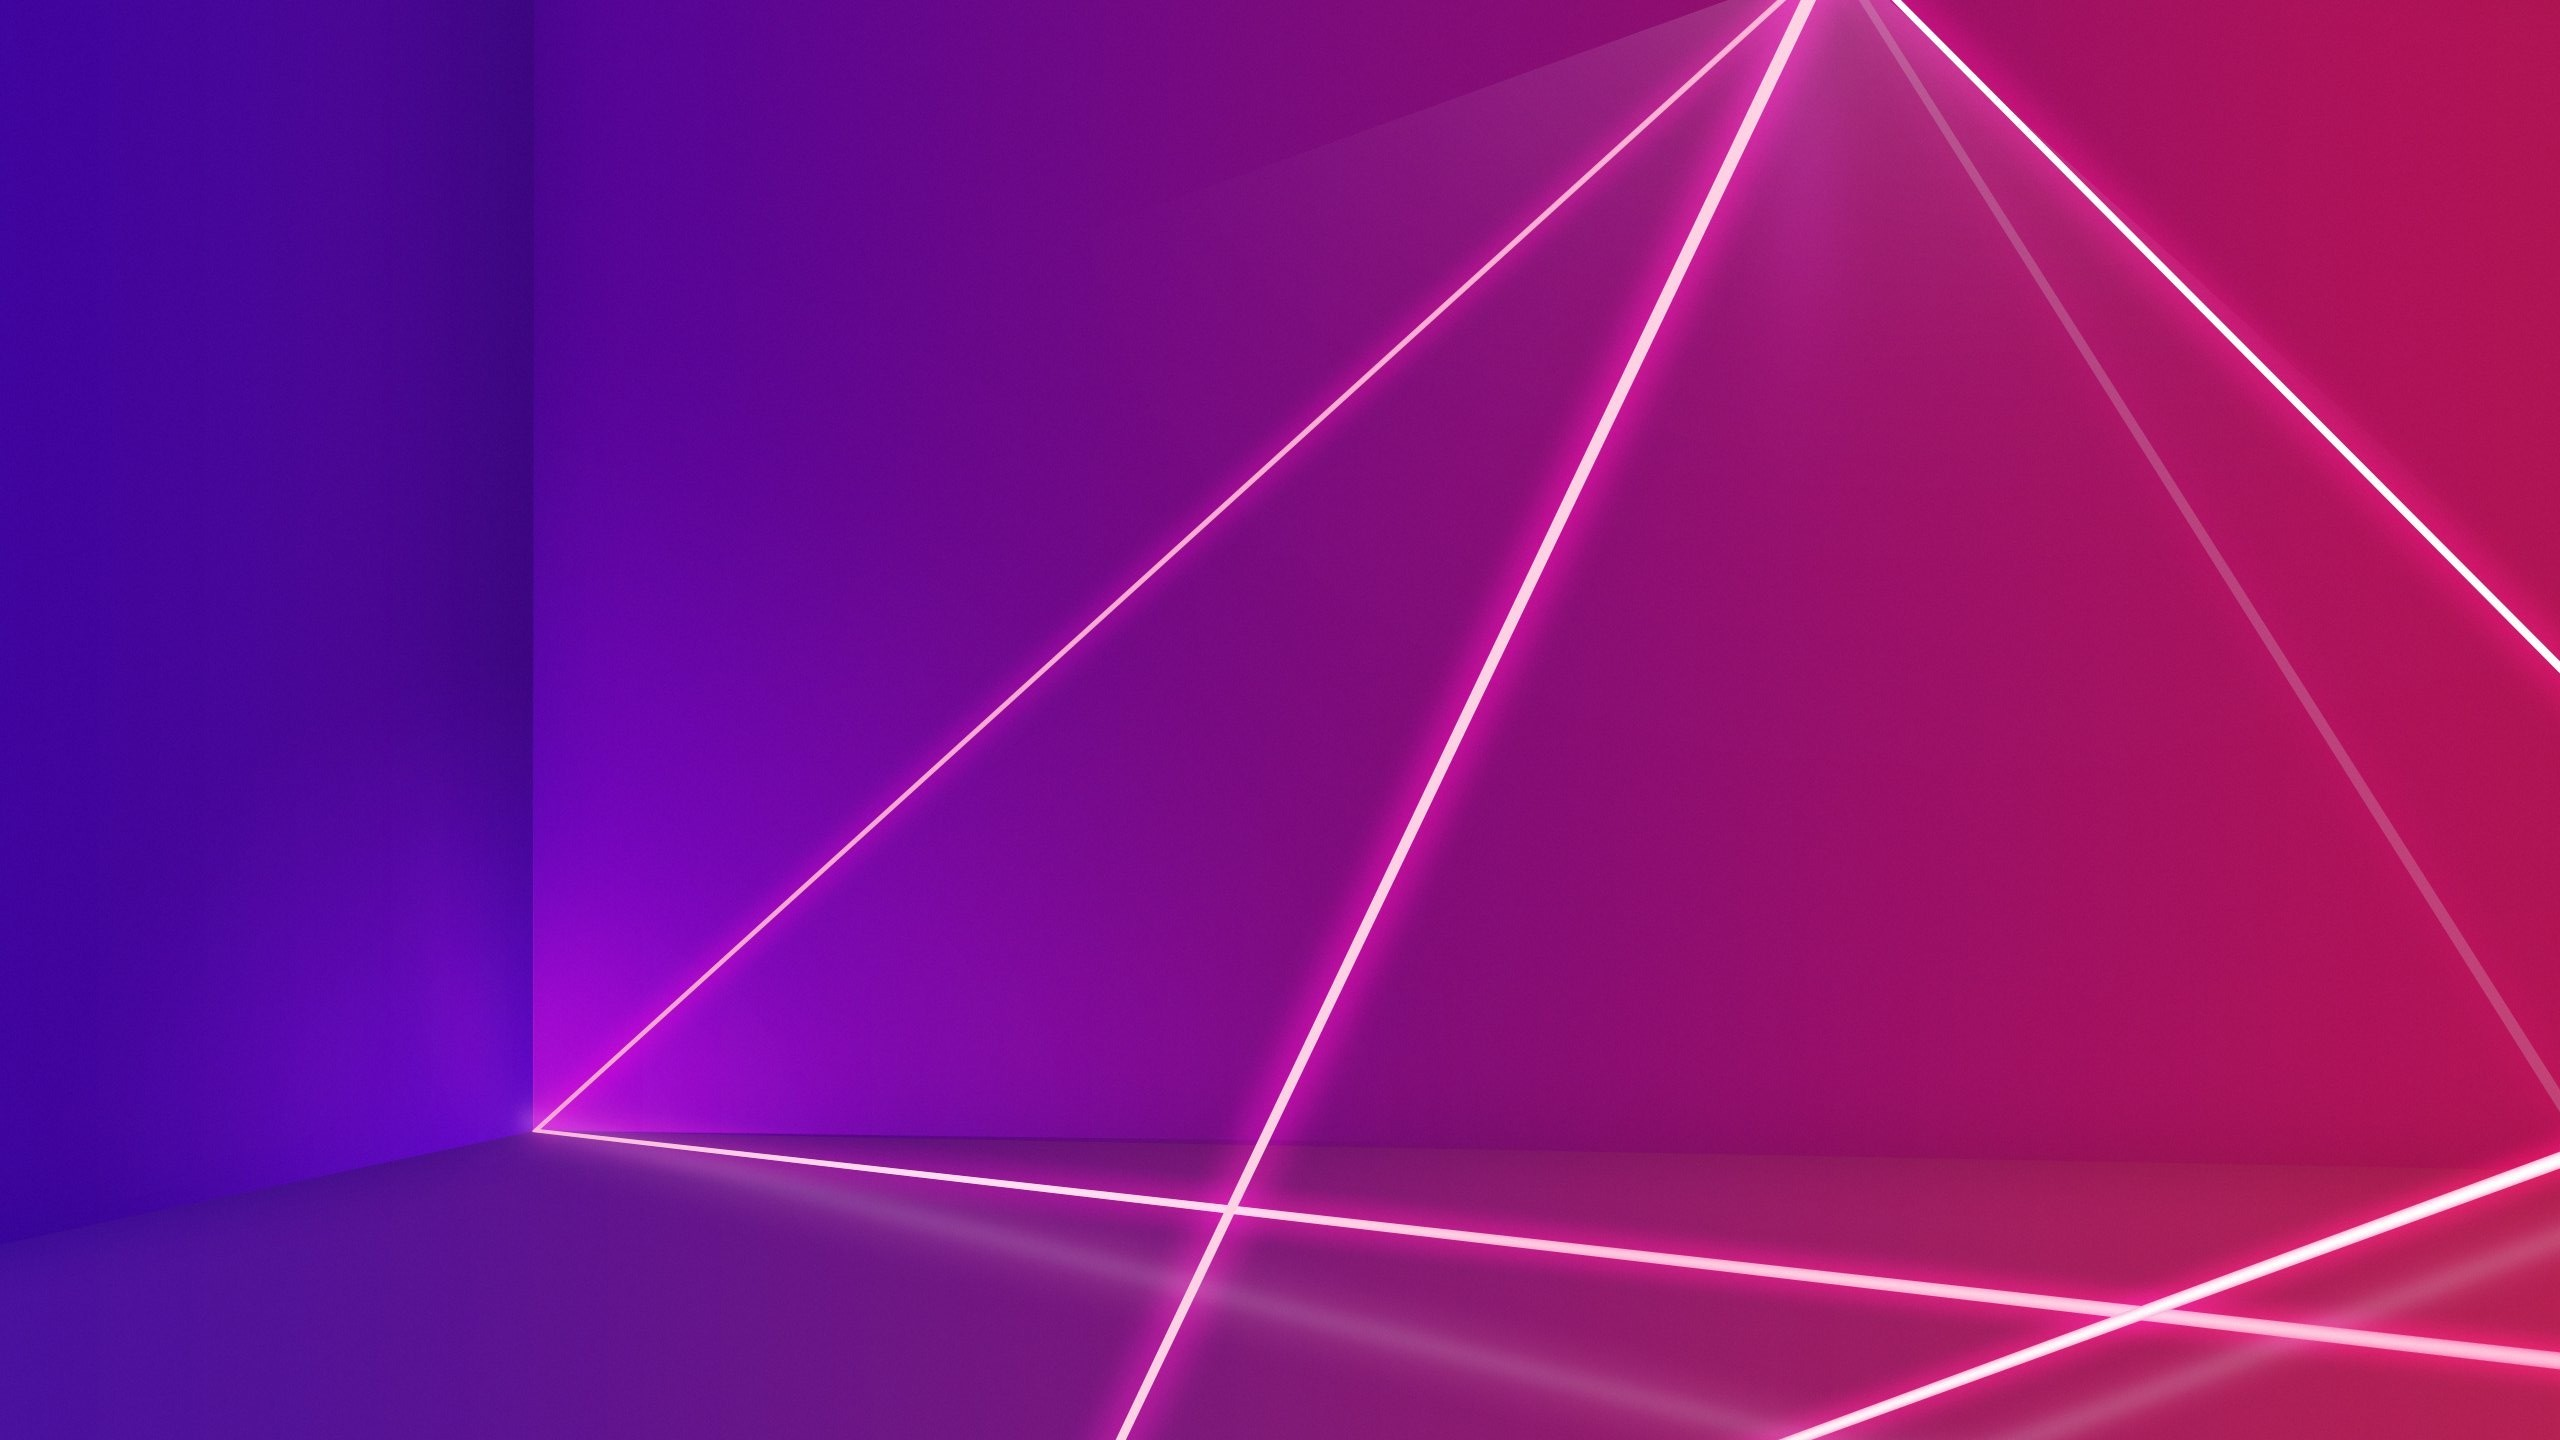 laser wallpaper hd 183��